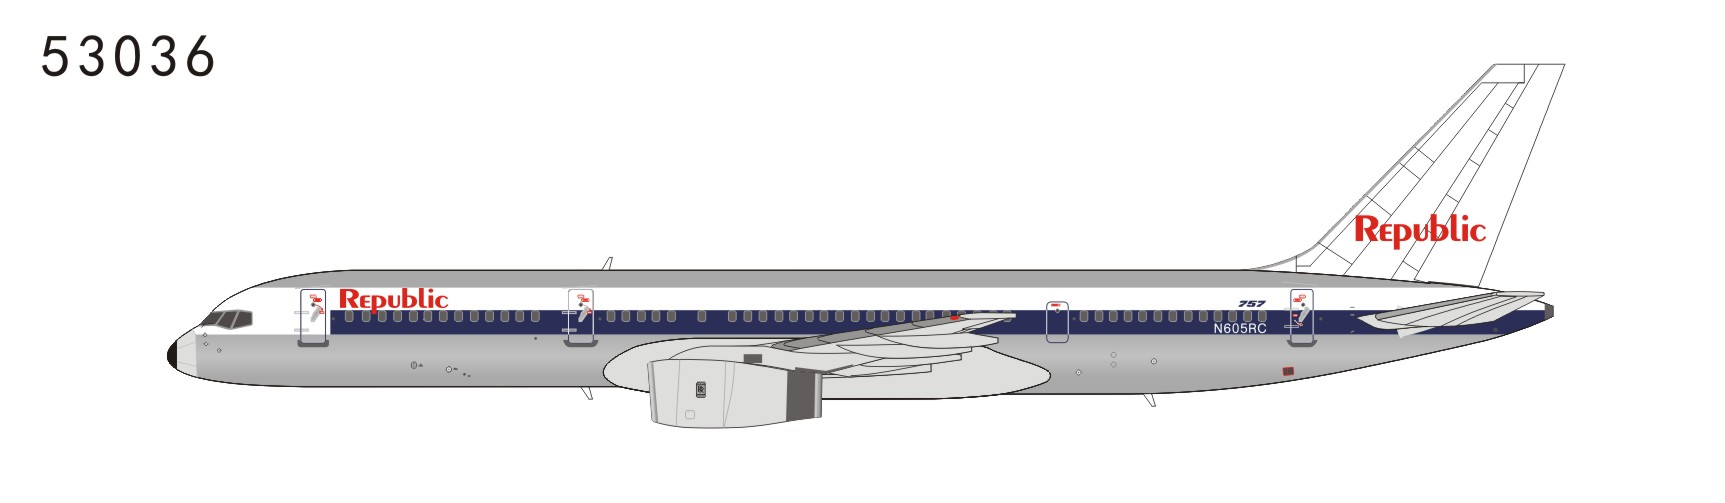 Republic Airlines 757-200 N605RC NW scheme, white tail (1:400)